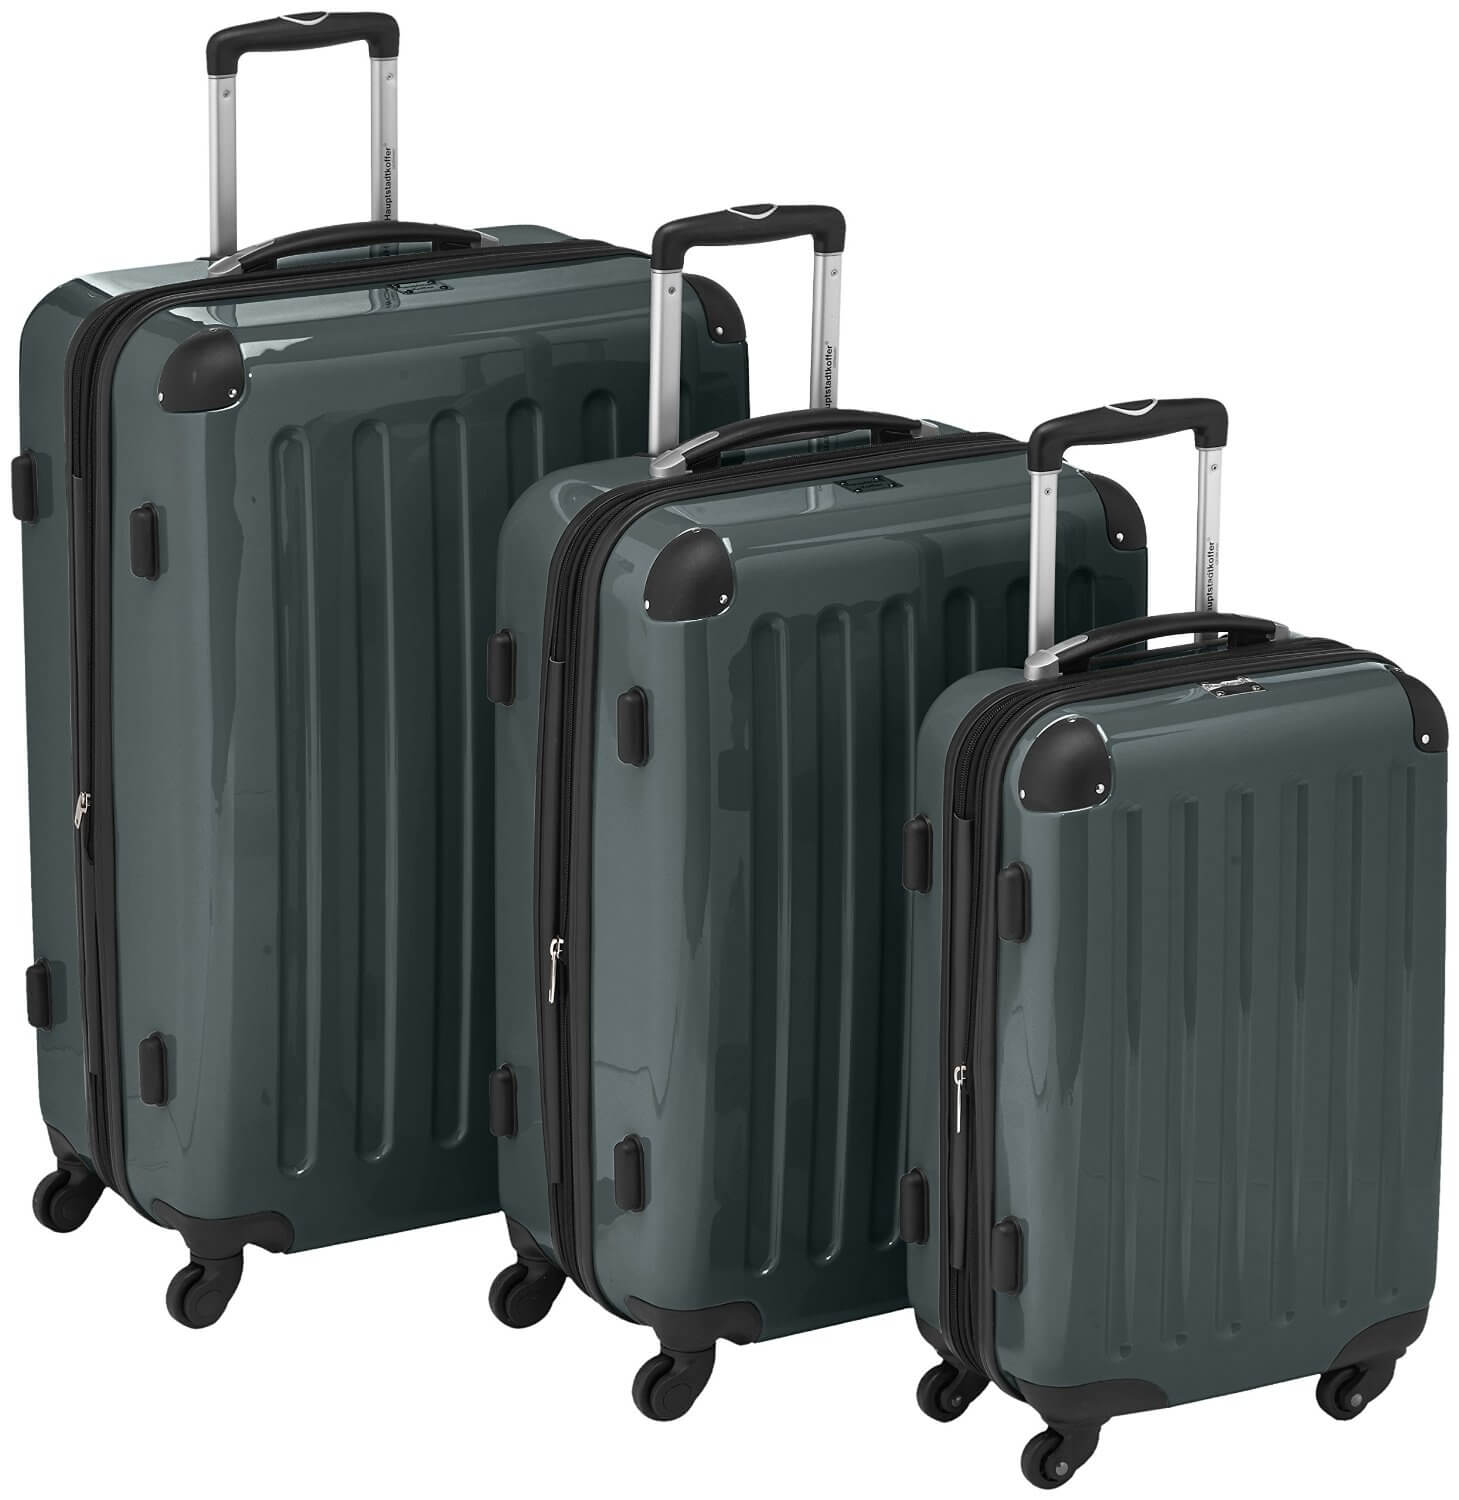 Spinner Suitcase Brands - Best Of 2016 - 2017 UK